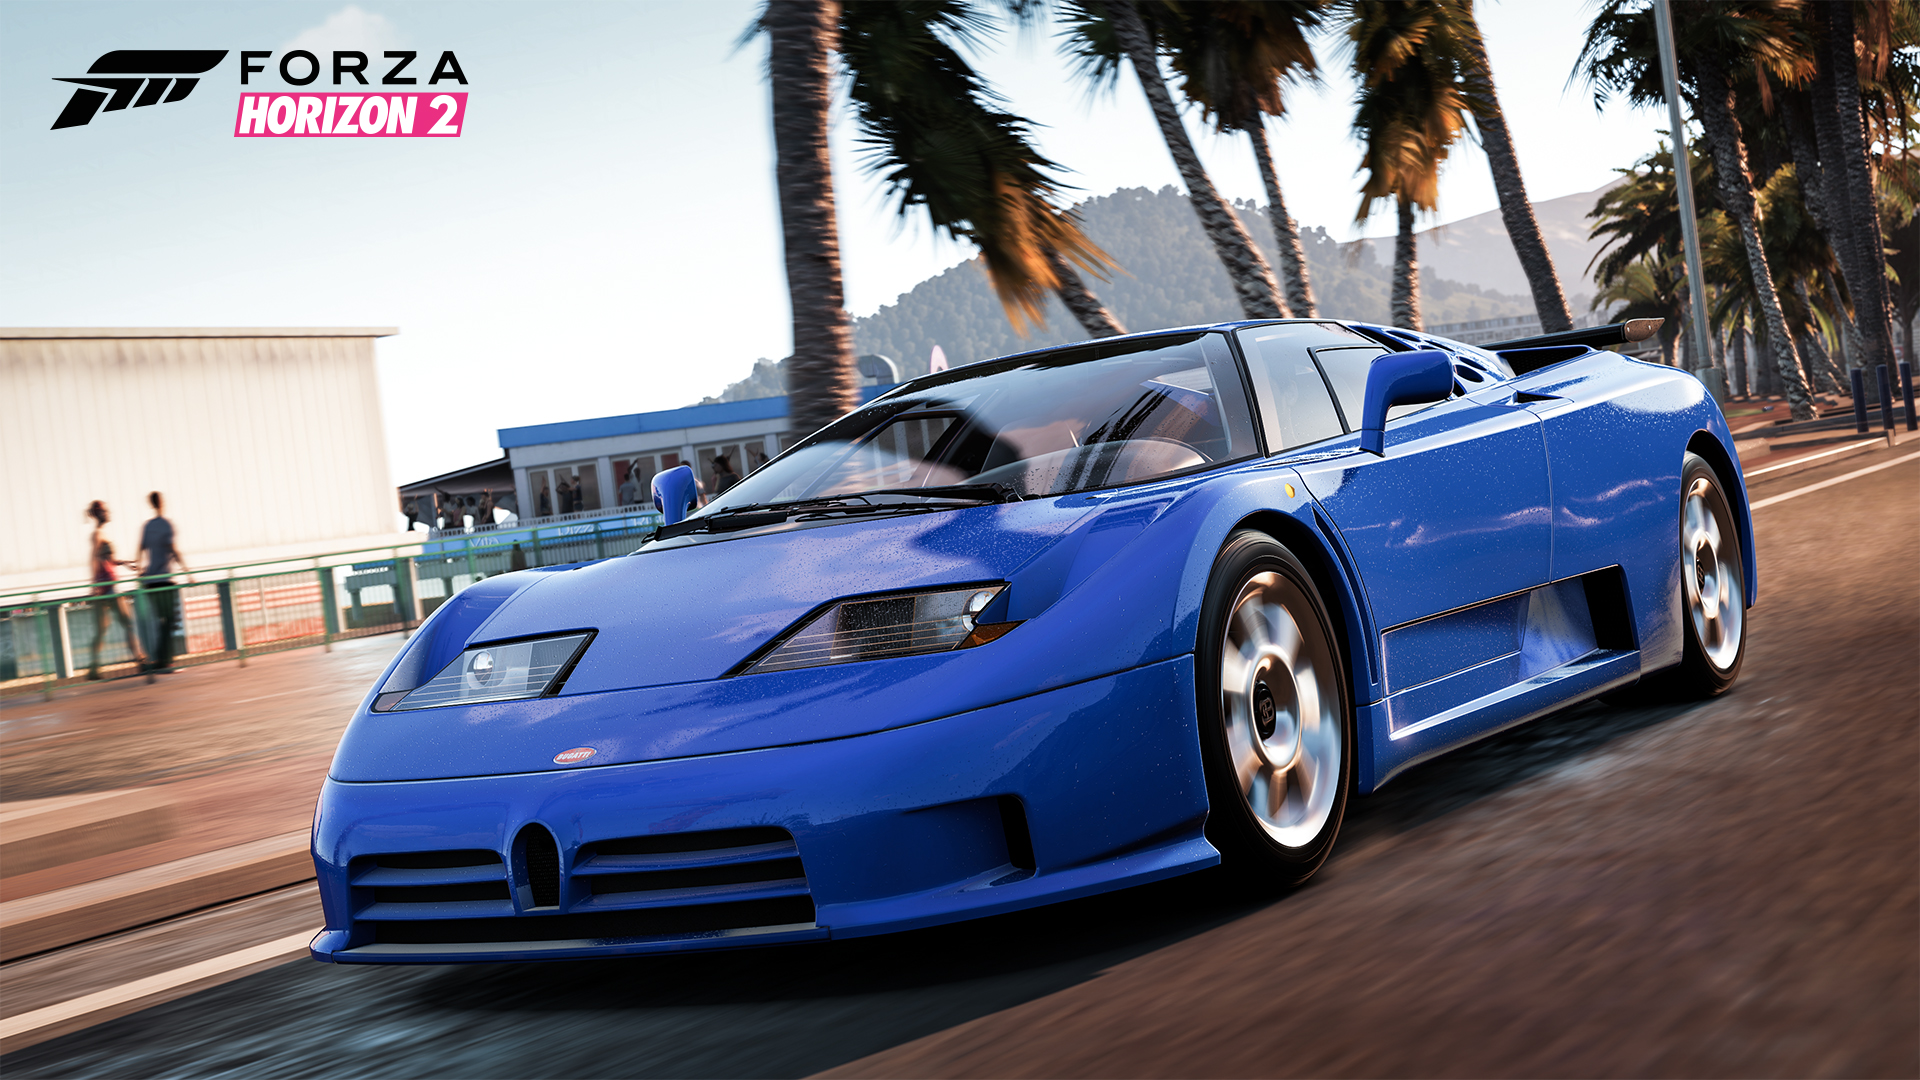 Forza Horizon 2 screenshot 3152